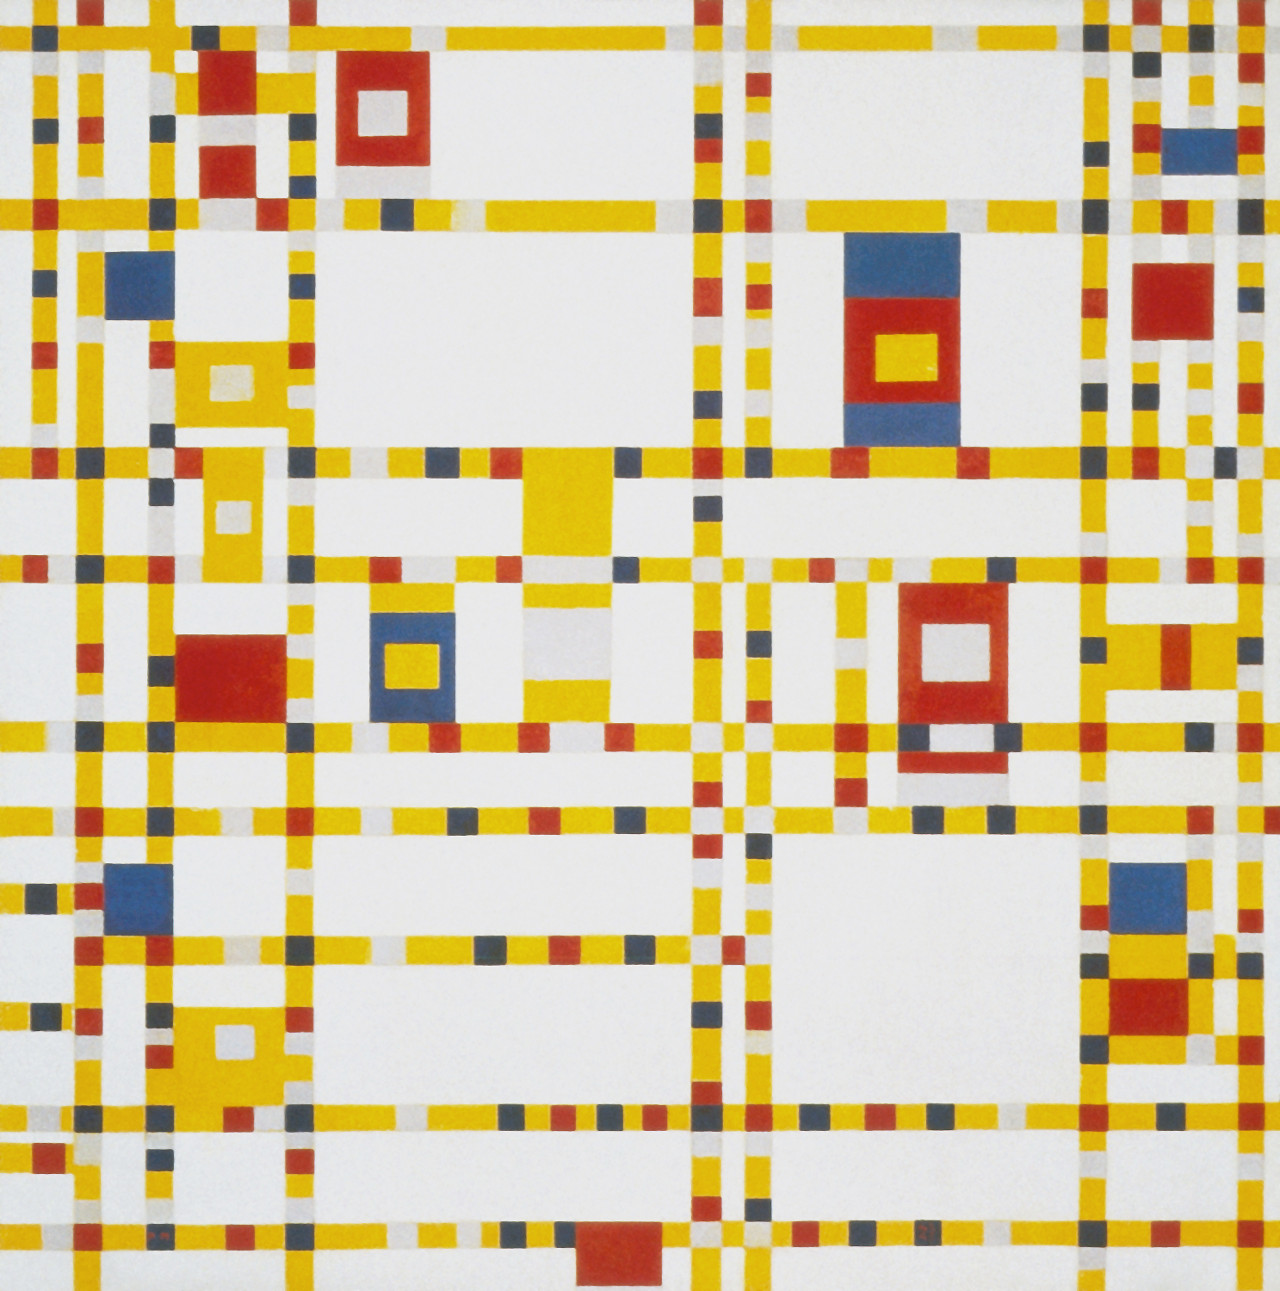 'Broadway Boogie-Woogie,' by Piet Mondrian: oil on canvas (1943)